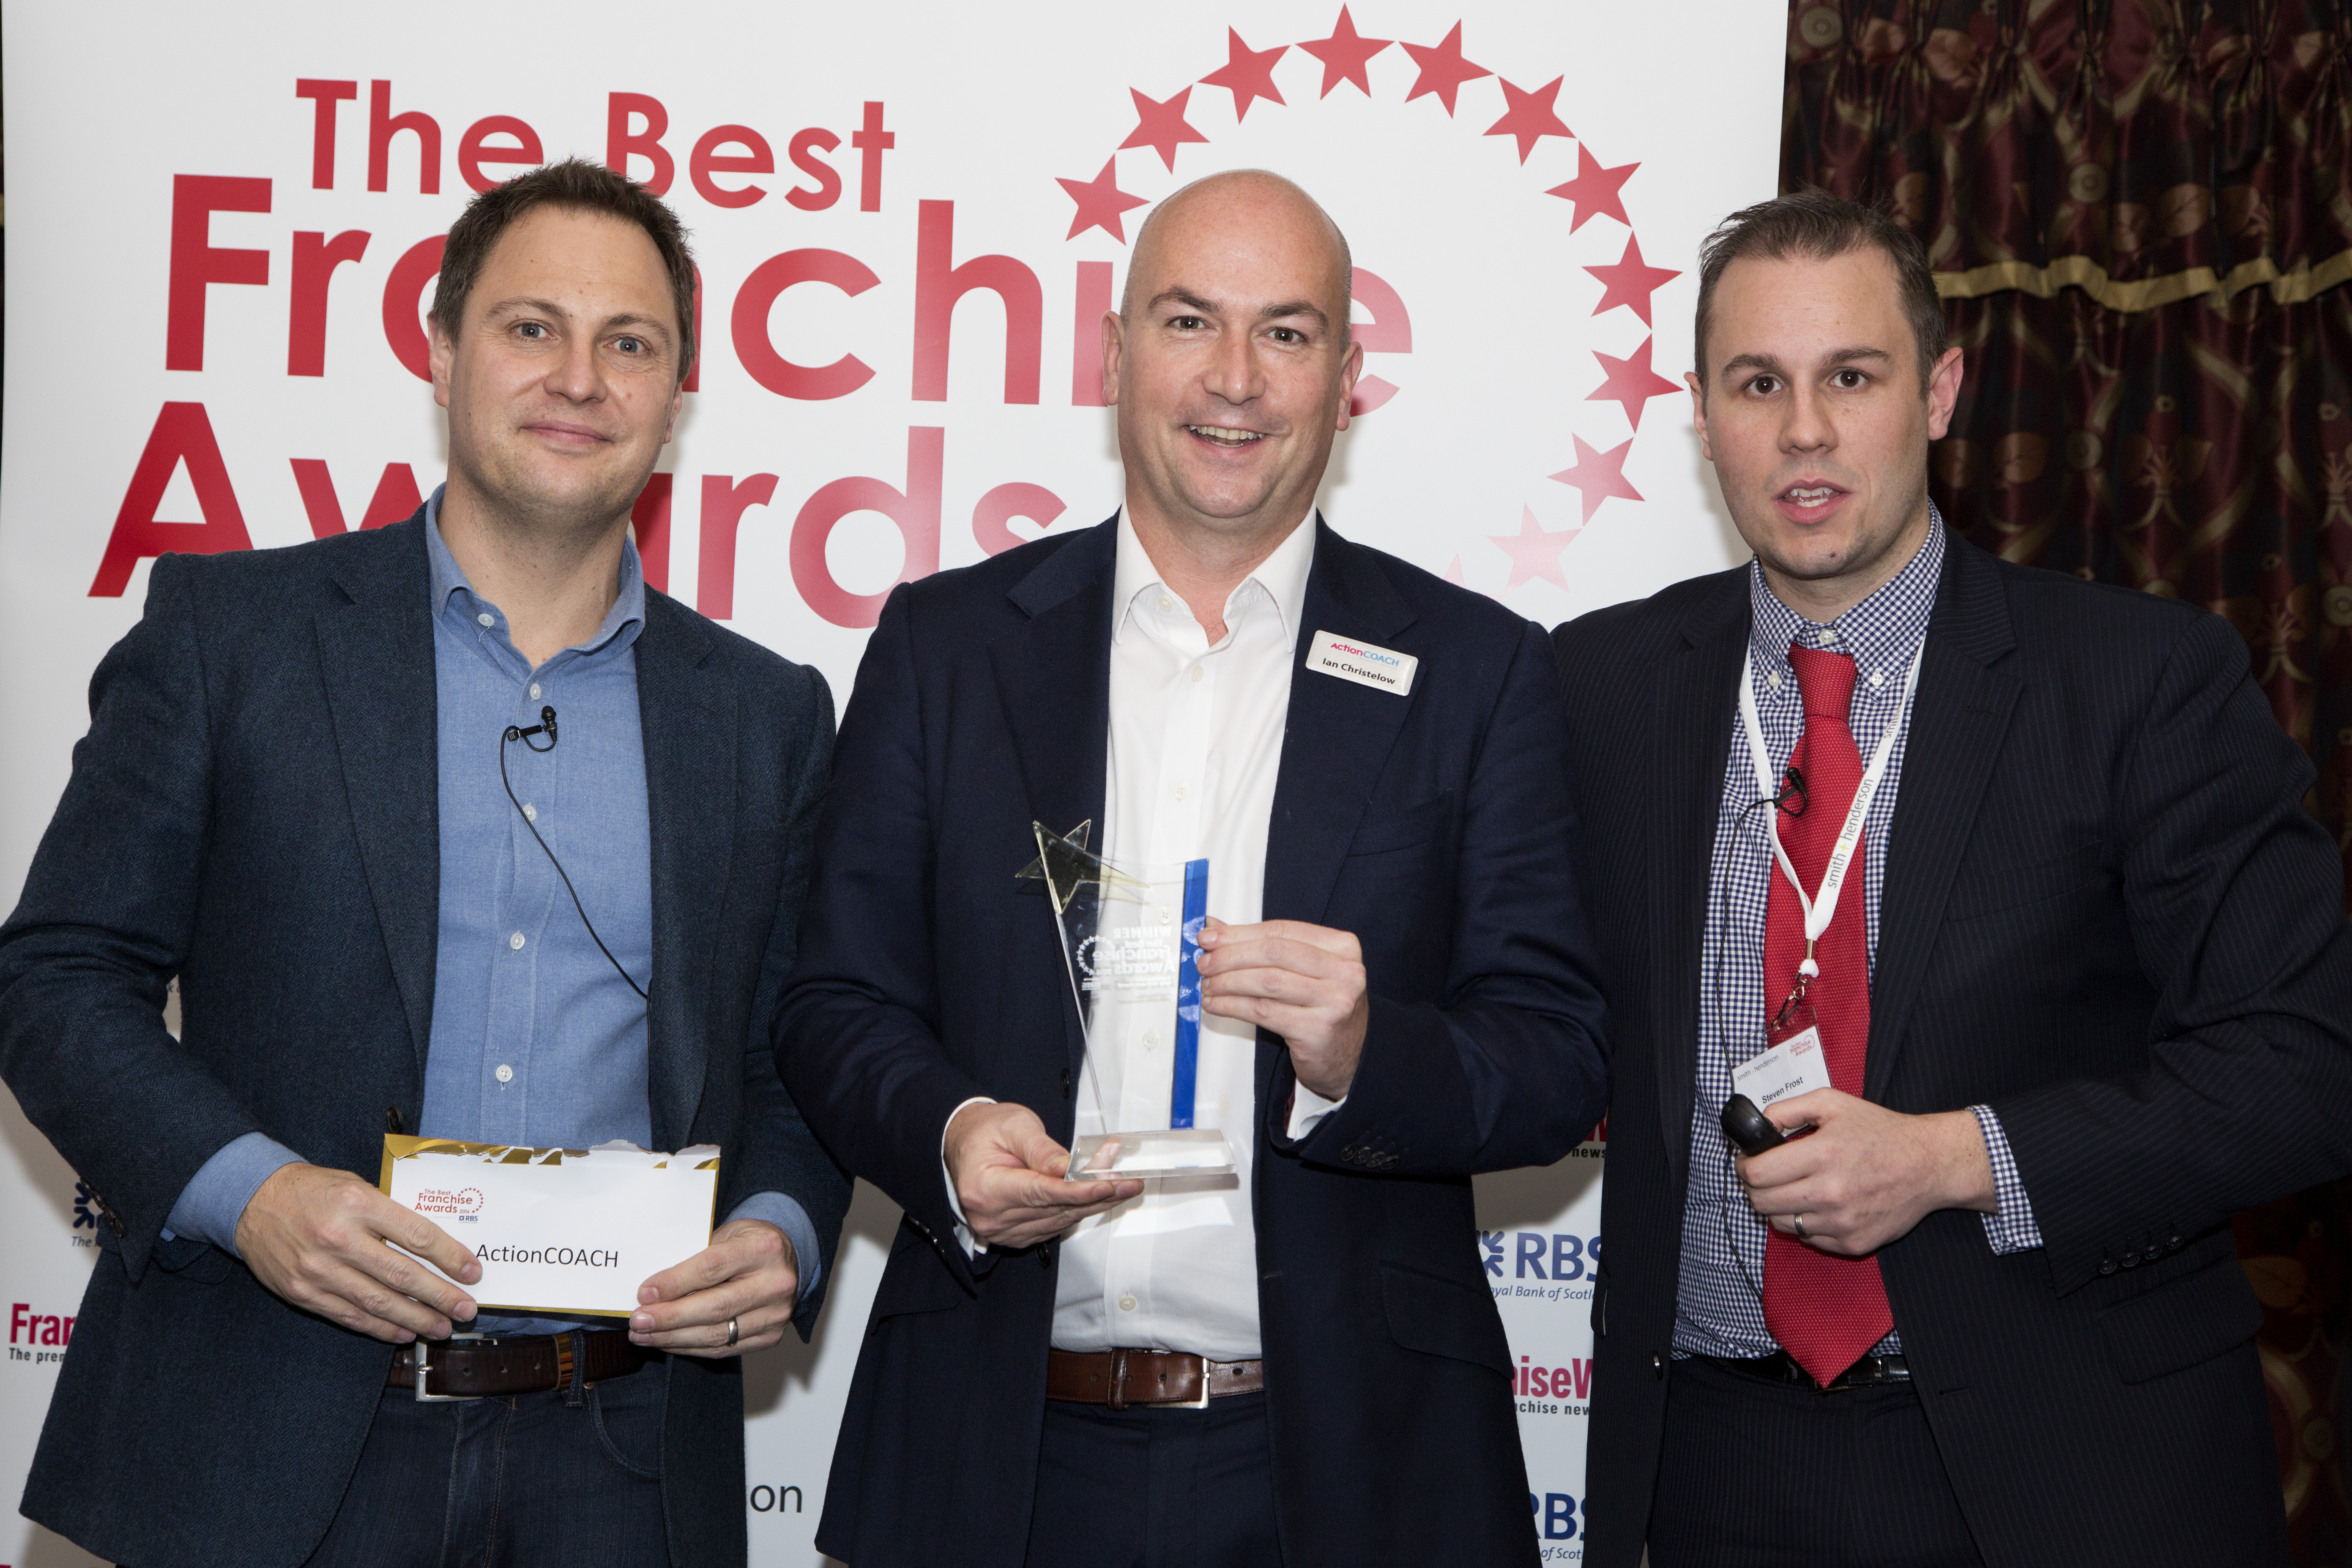 ActionCOACH Franchise Awards winners